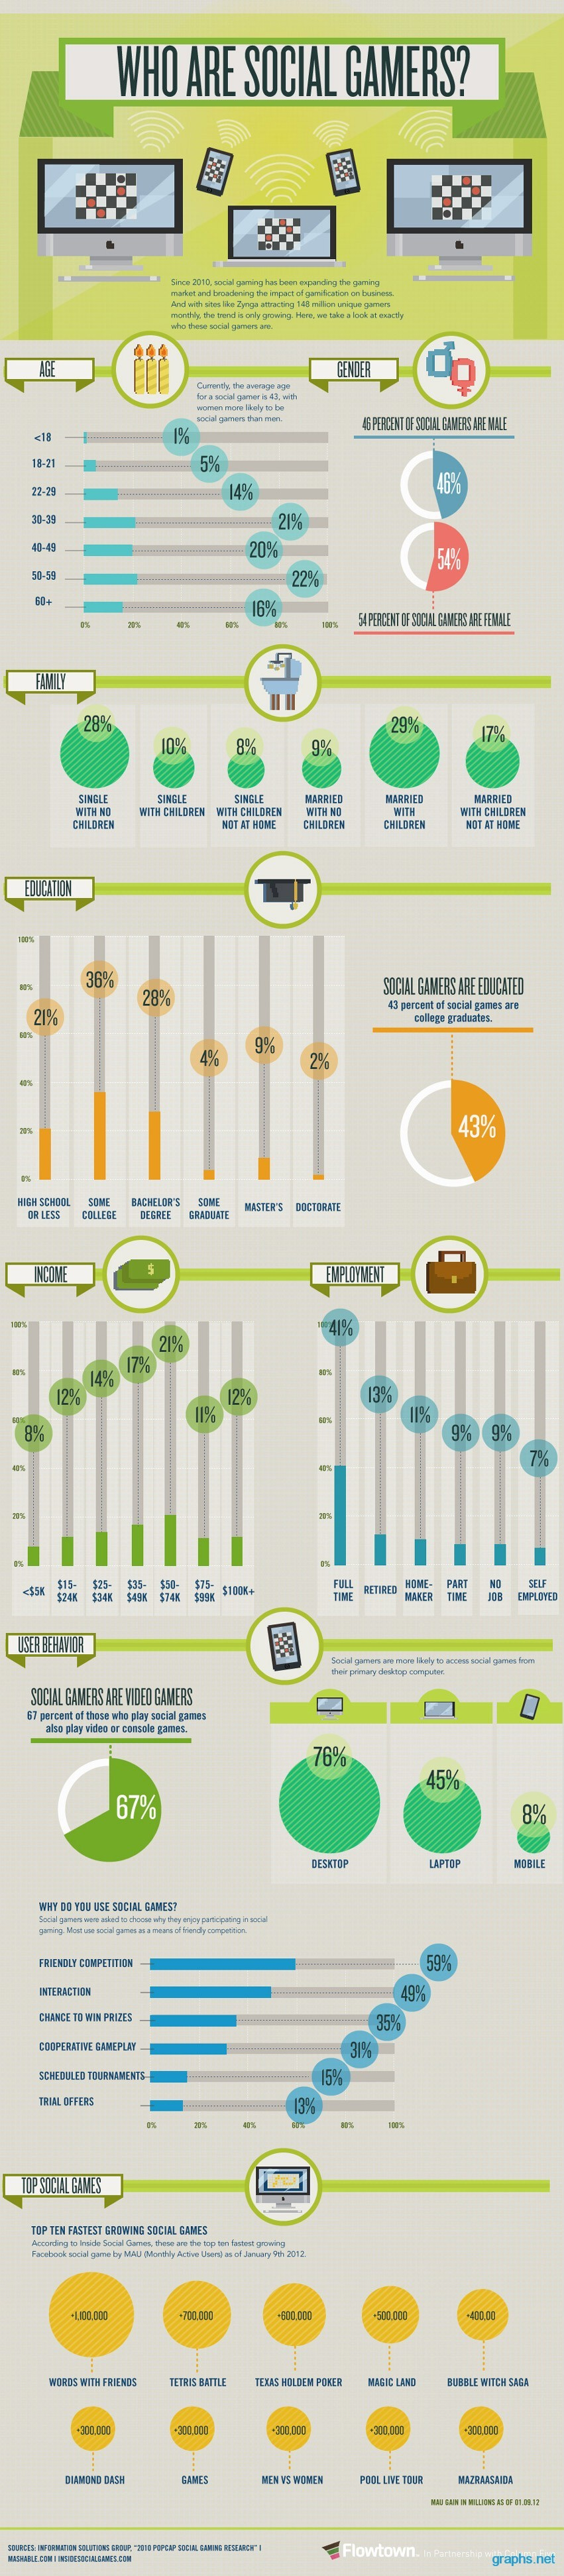 Social Gaming by the Numbers